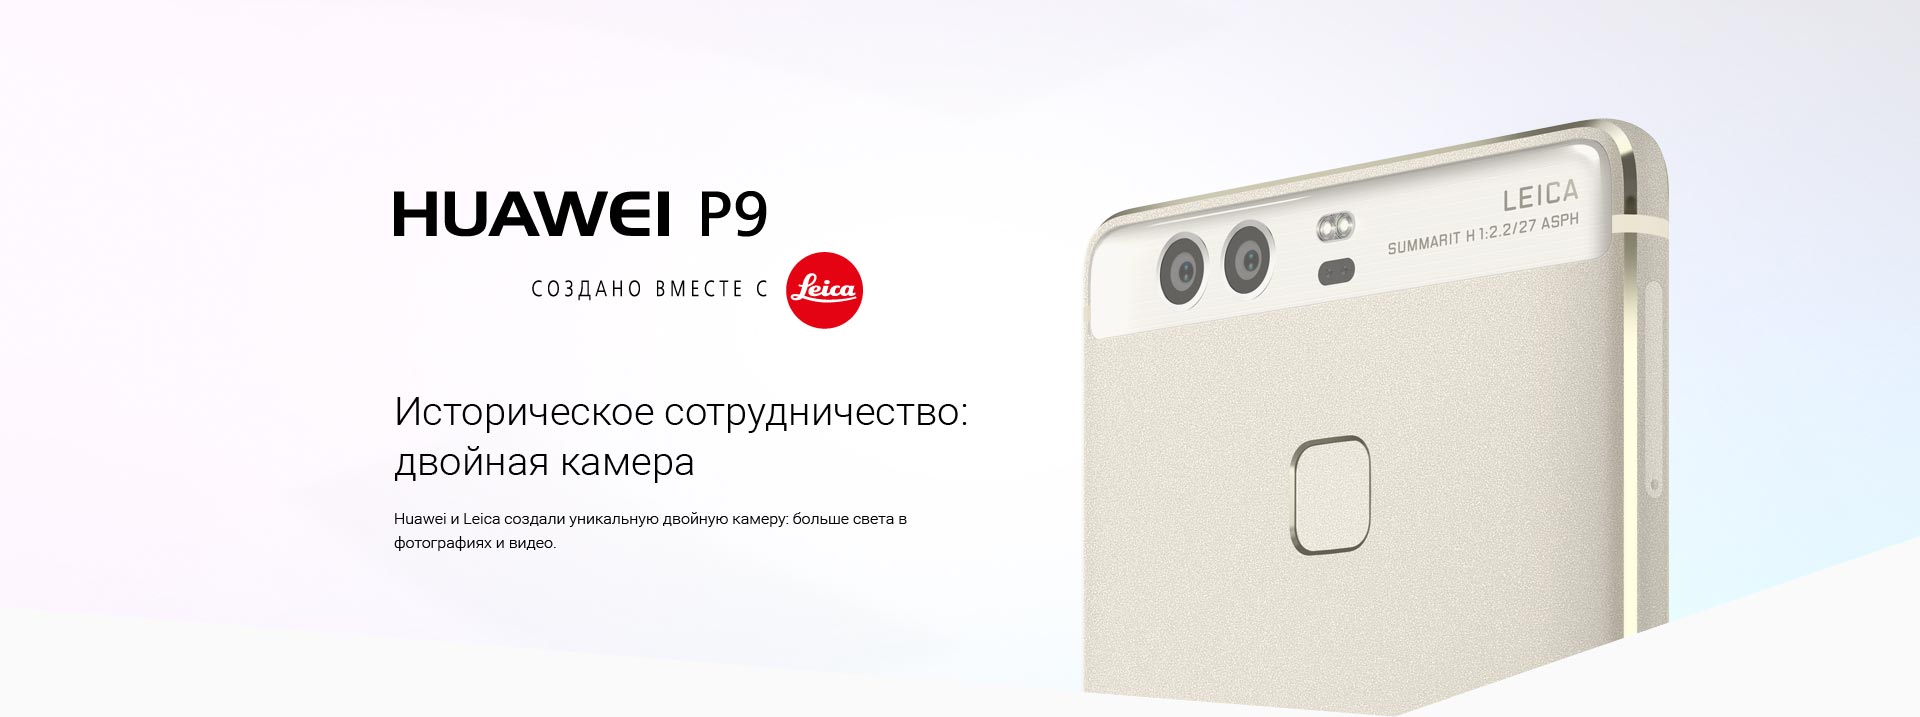 P9-overview-01